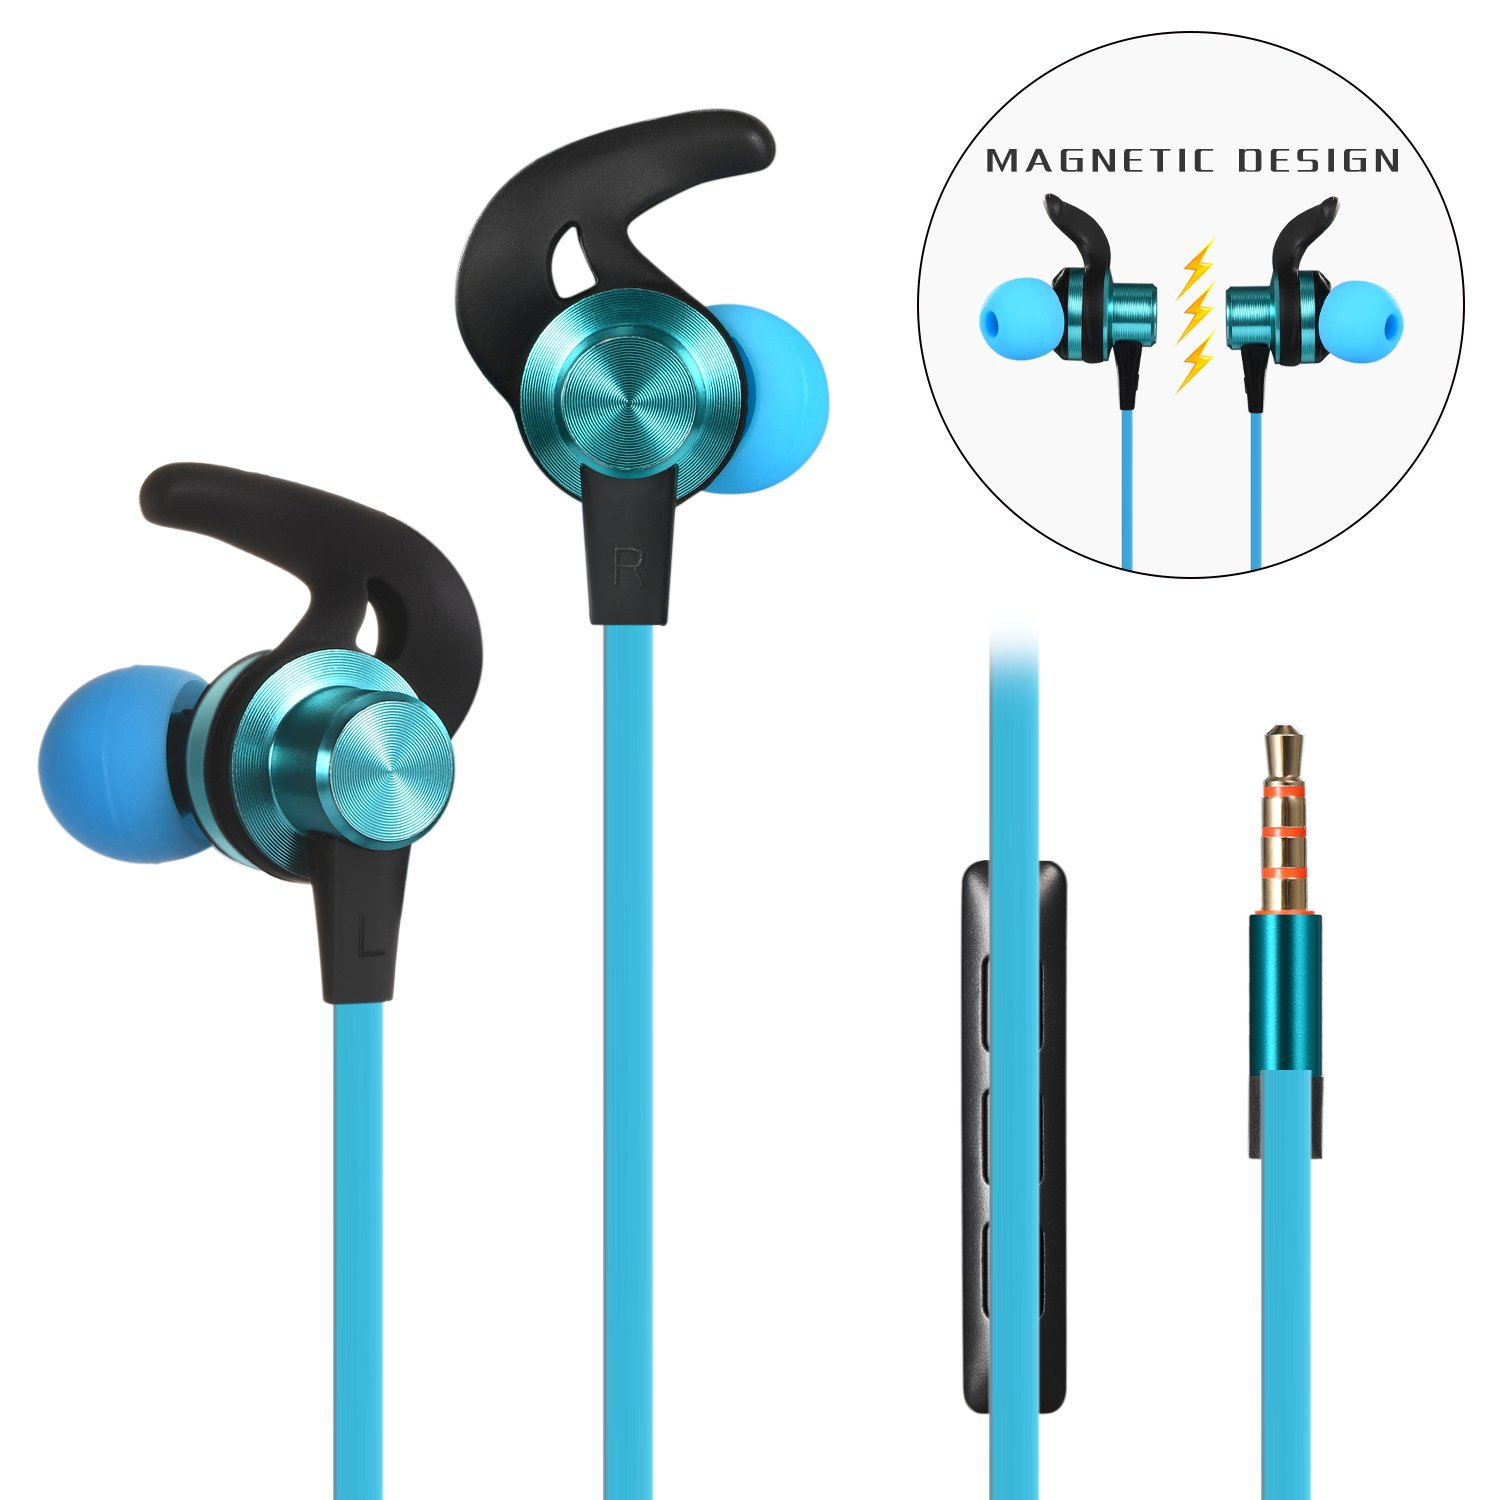 PIN L Lightweight Neckband Sports Gym Running Headsets in-Ear Stereo Earbuds Magnetic Design Wire Control with Microphone MicroSD Card for Mobile PC Blackish Green